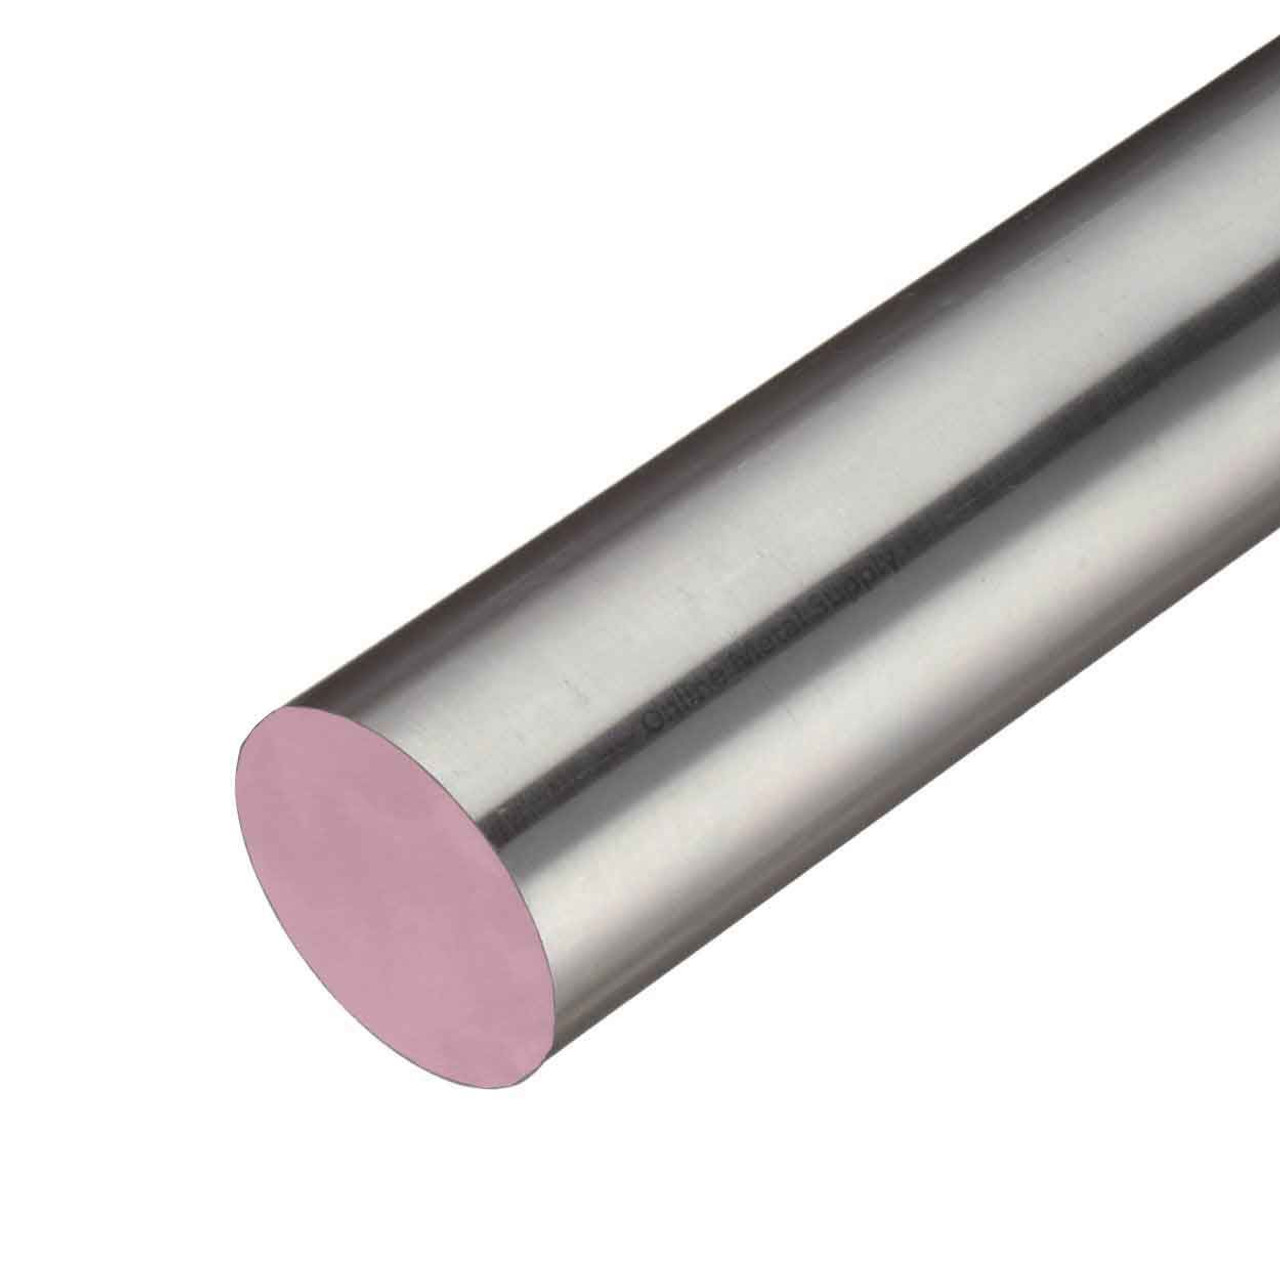 4.000 (4 inch) x 8 inches, 303 CF Stainless Steel Round Rod